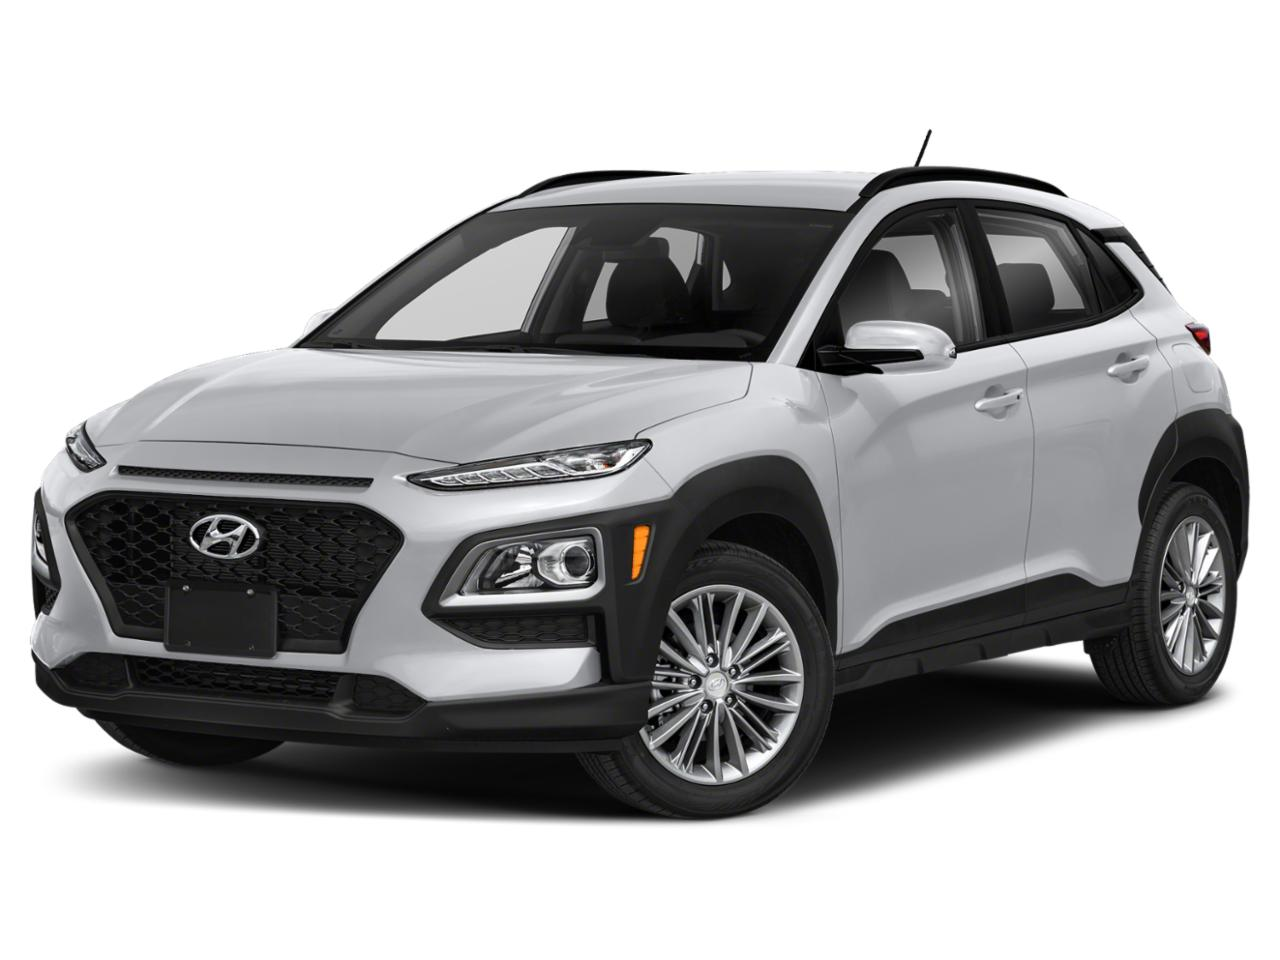 2018 Hyundai Kona Vehicle Photo in Merrillville, IN 46410